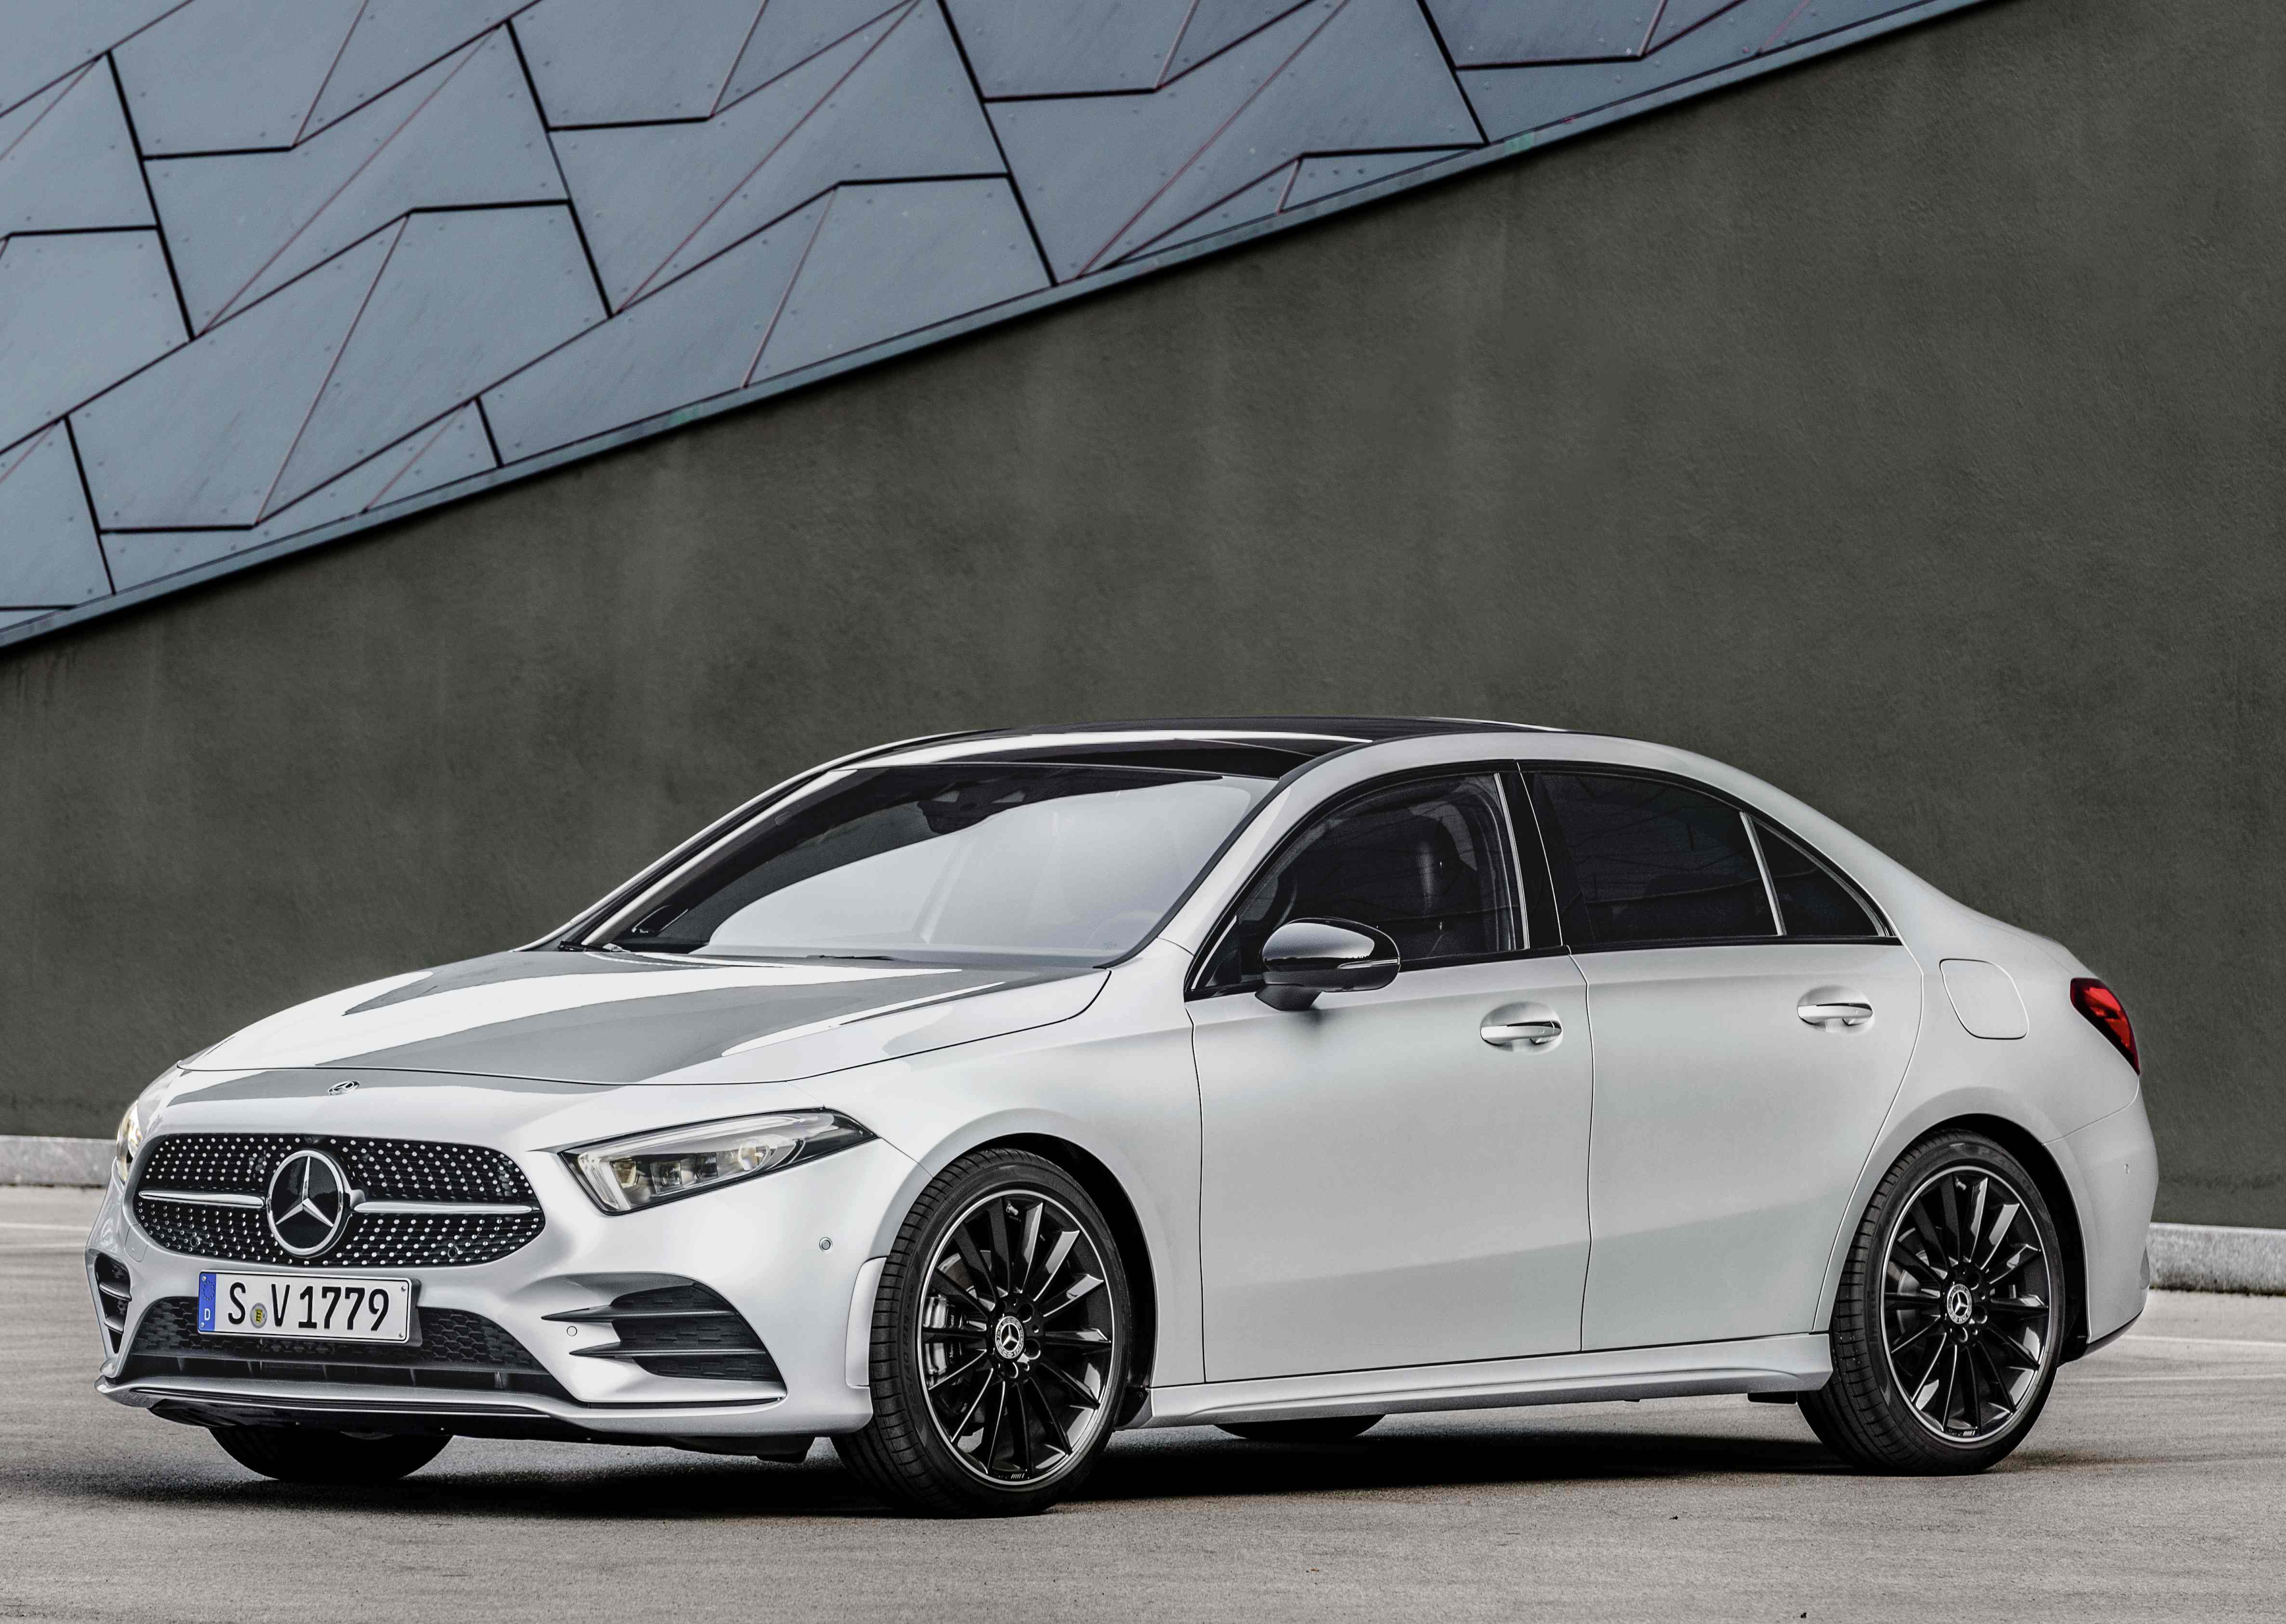 Mercedes-Benz product offensive in 2019